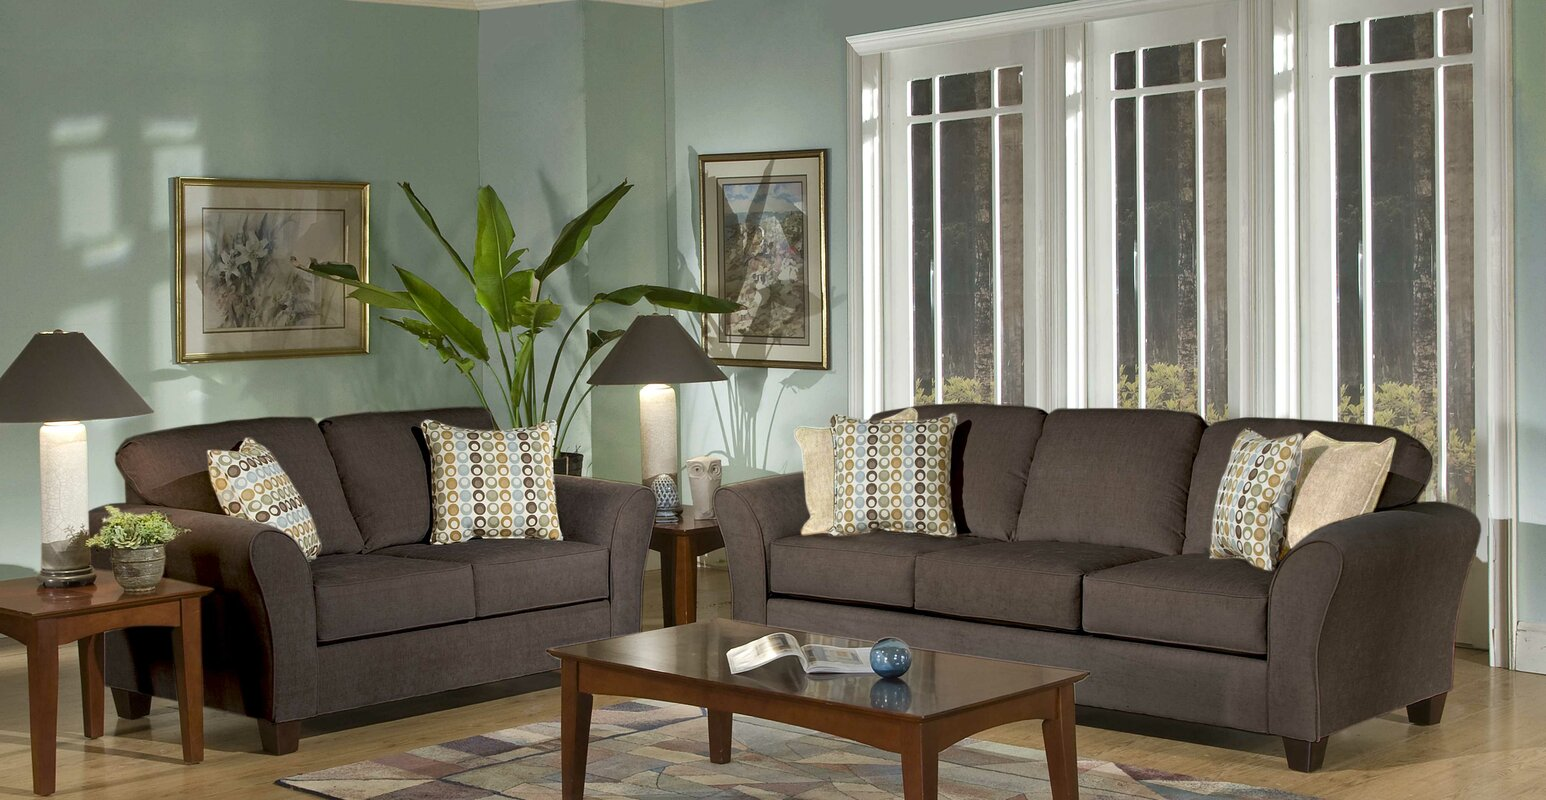 Three Posts Serta Upholstery Franklin Sofa & Reviews | Wayfair